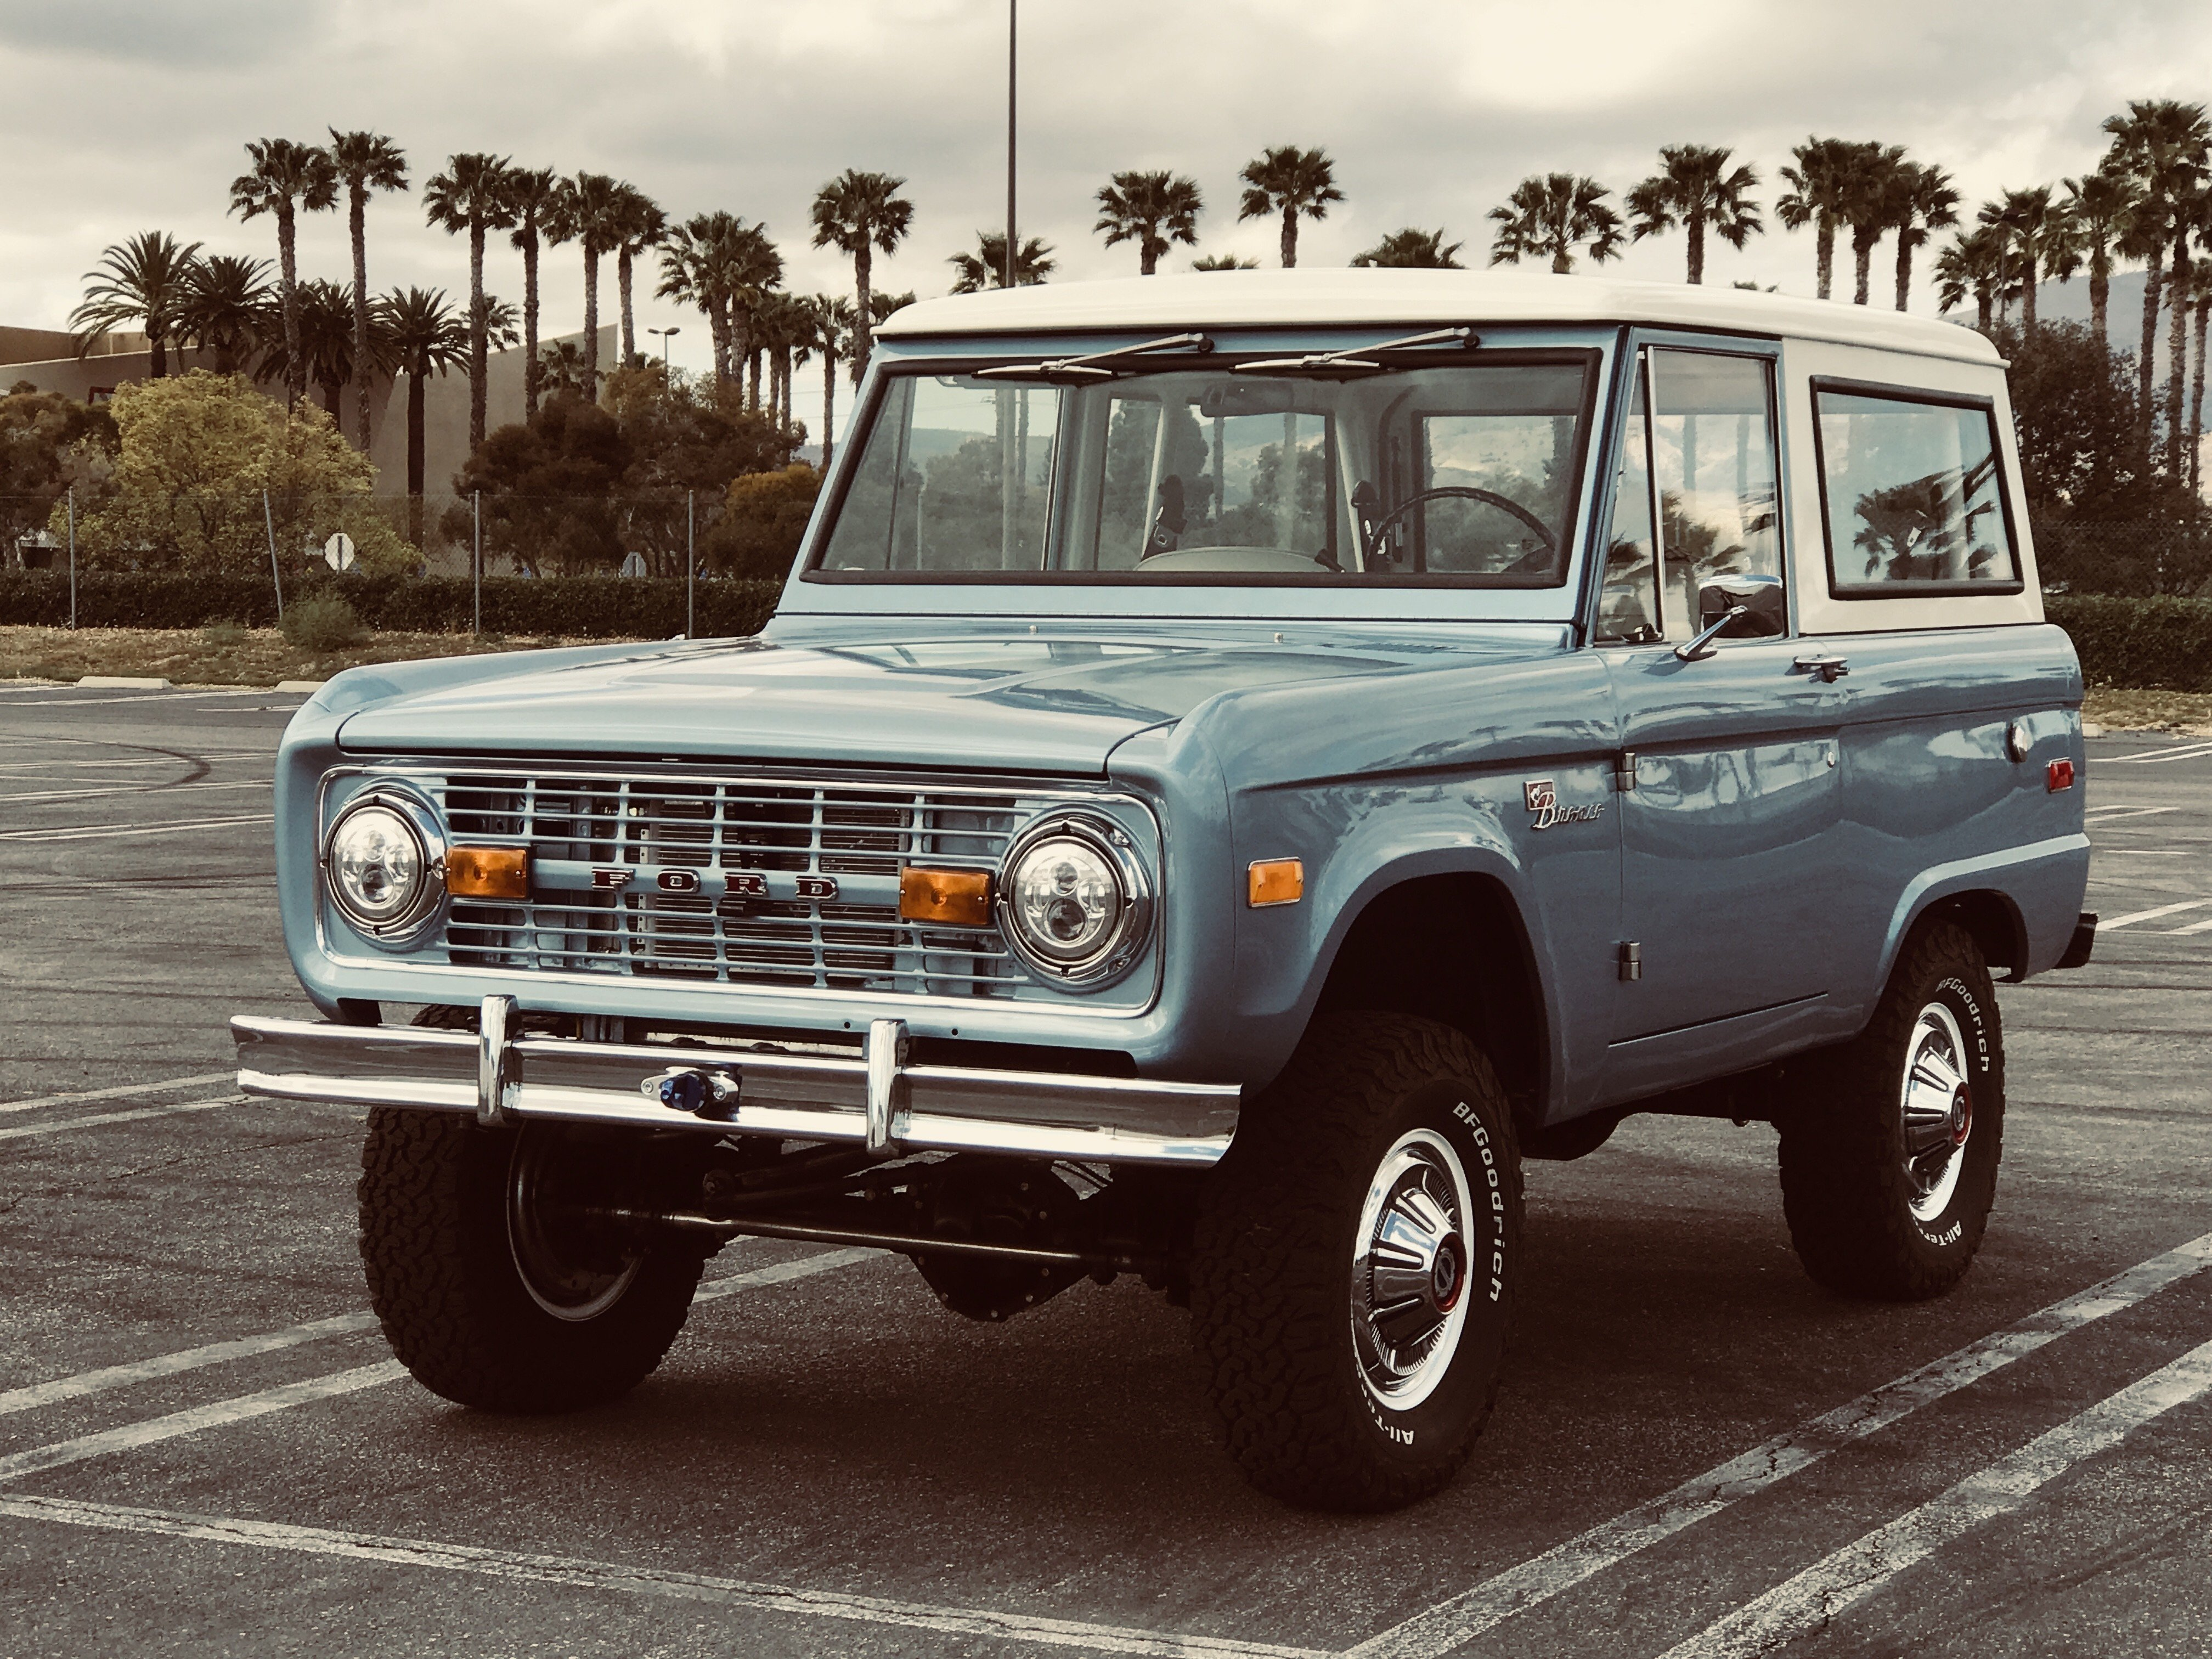 1970 Ford Bronco Lifted For Sale Near Chatsworth California 1280x720